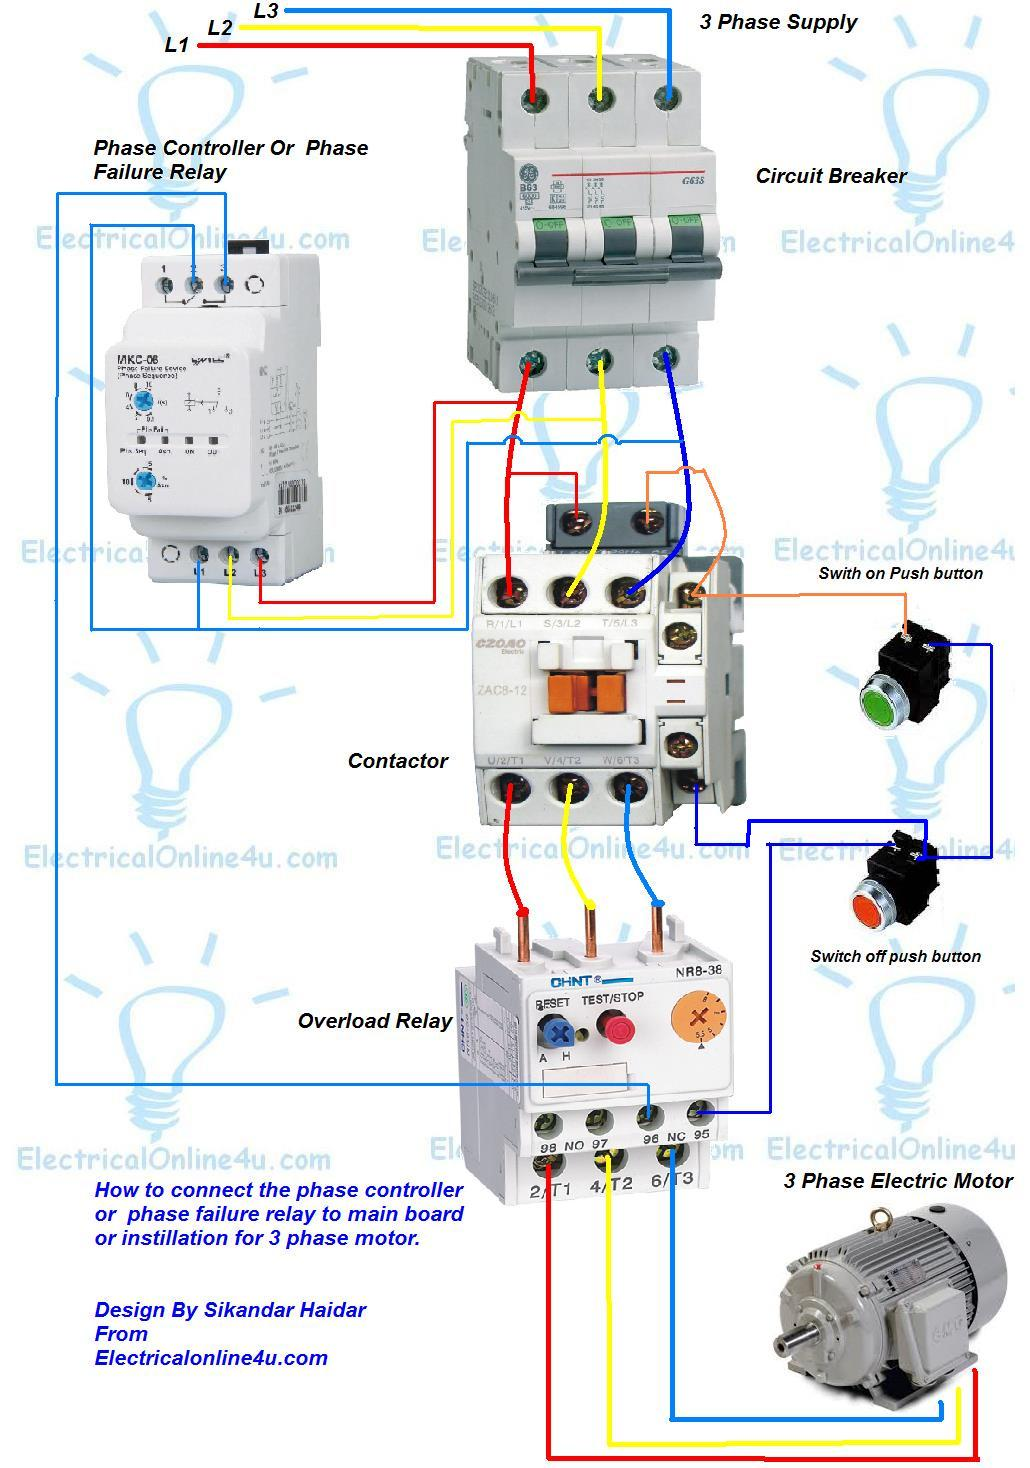 Phase%2Bfailure%2Brelay%2B %2Bphase%2Bcontroller%2Binstilaion%2Bin%2B3%2Bphase%2BMain%2Bboard%2Bor%2Bfor%2B3%2Bphase%2Bmotor phase controller wiring phase failure relay diagram electrical relay wiring diagram at webbmarketing.co